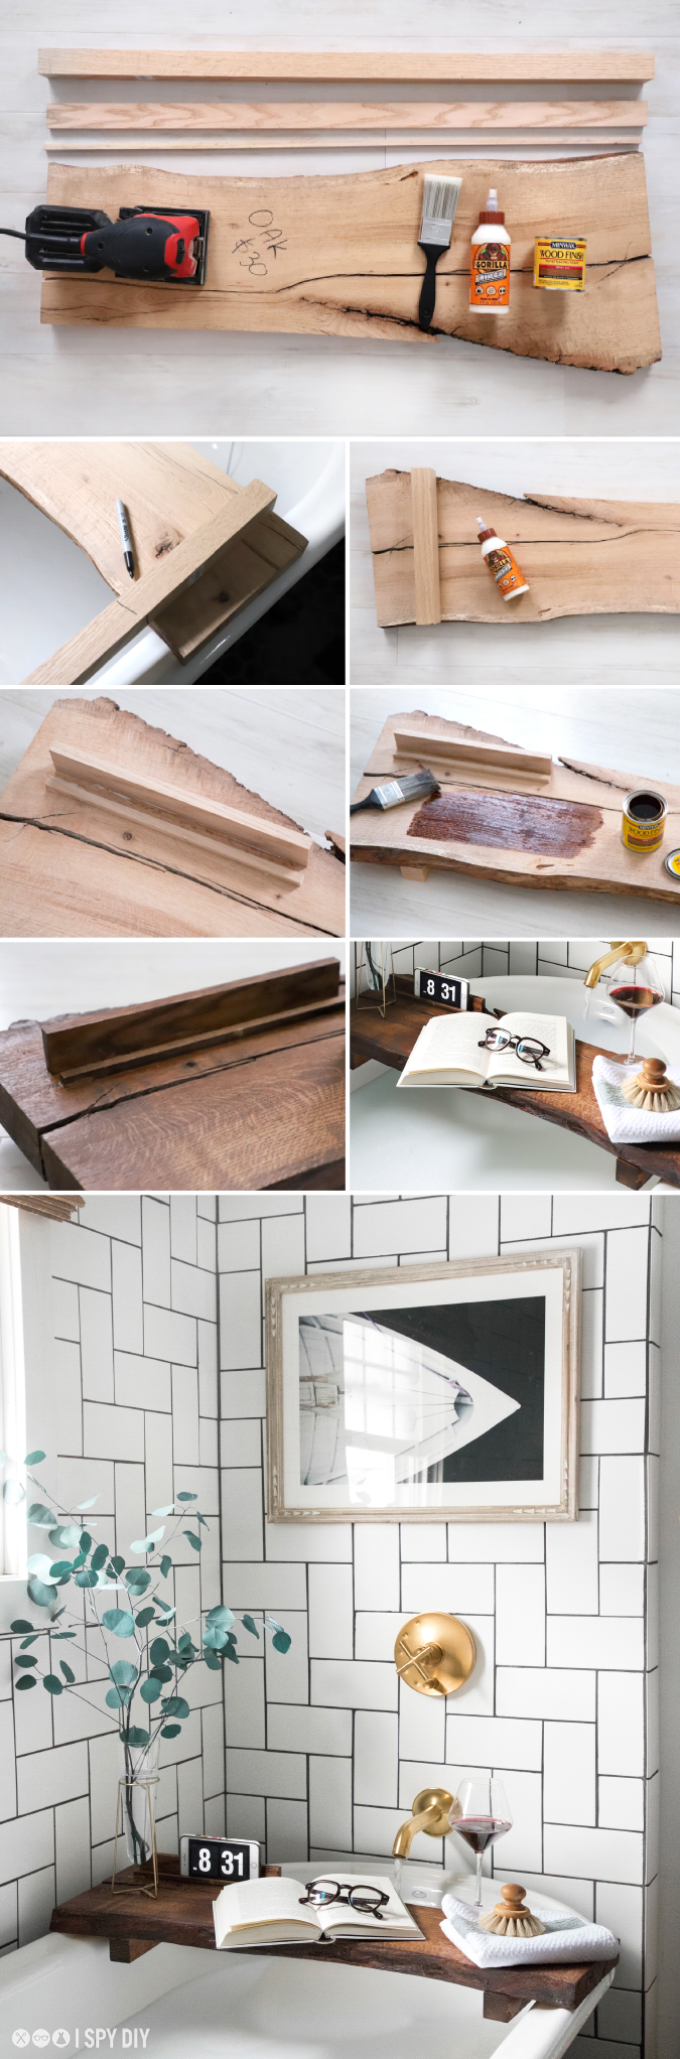 ispydiy_bathboard_steps